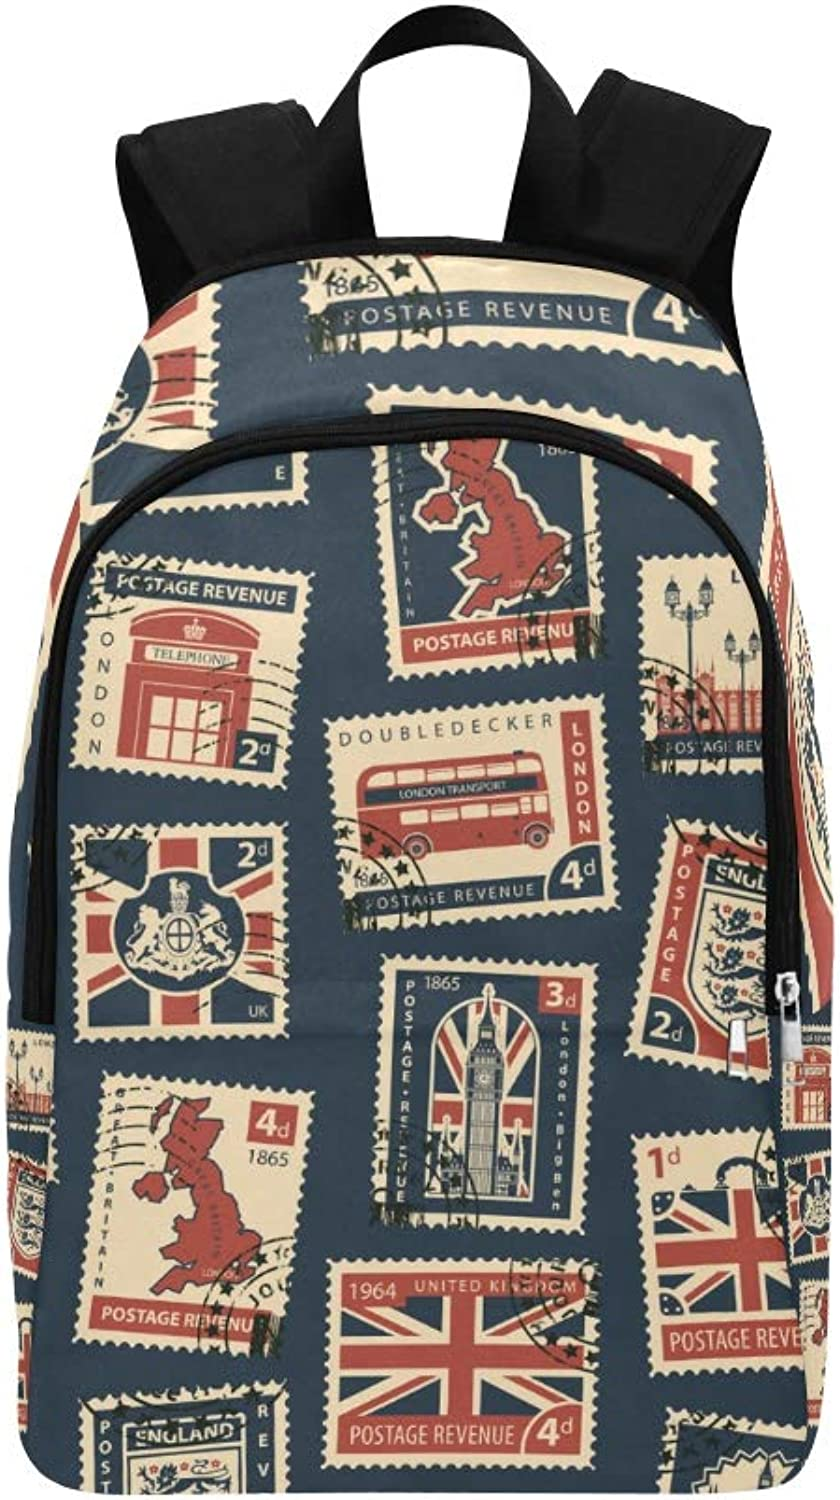 Stamps and Postmarks in Retro Style Casual Daypack Travel Bag College School Backpack for Mens and Women